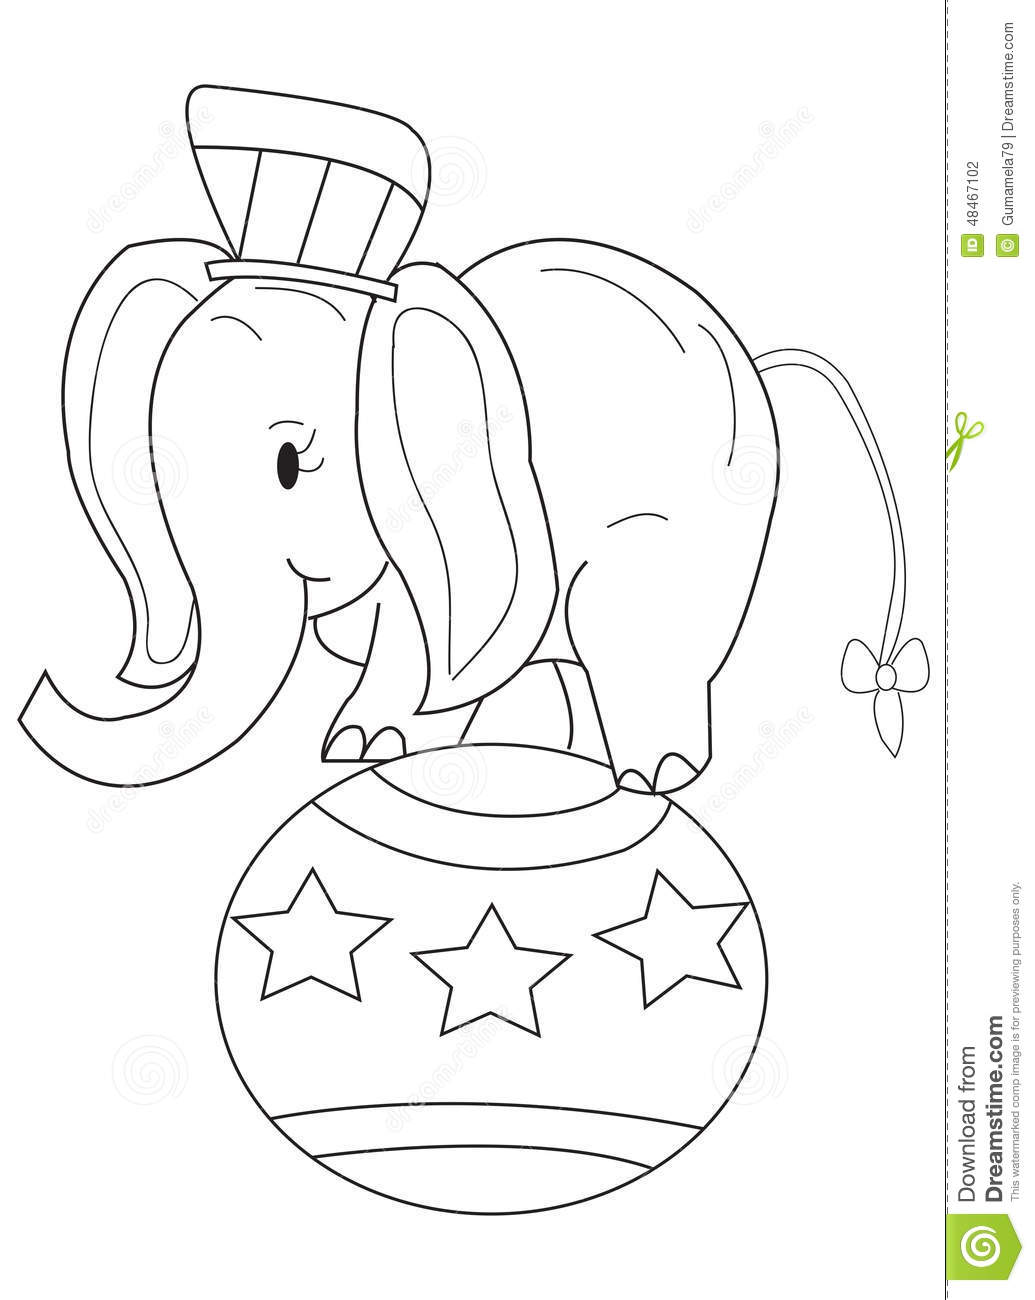 Hand Drawn Coloring Page Of A Circus Elephant Stock